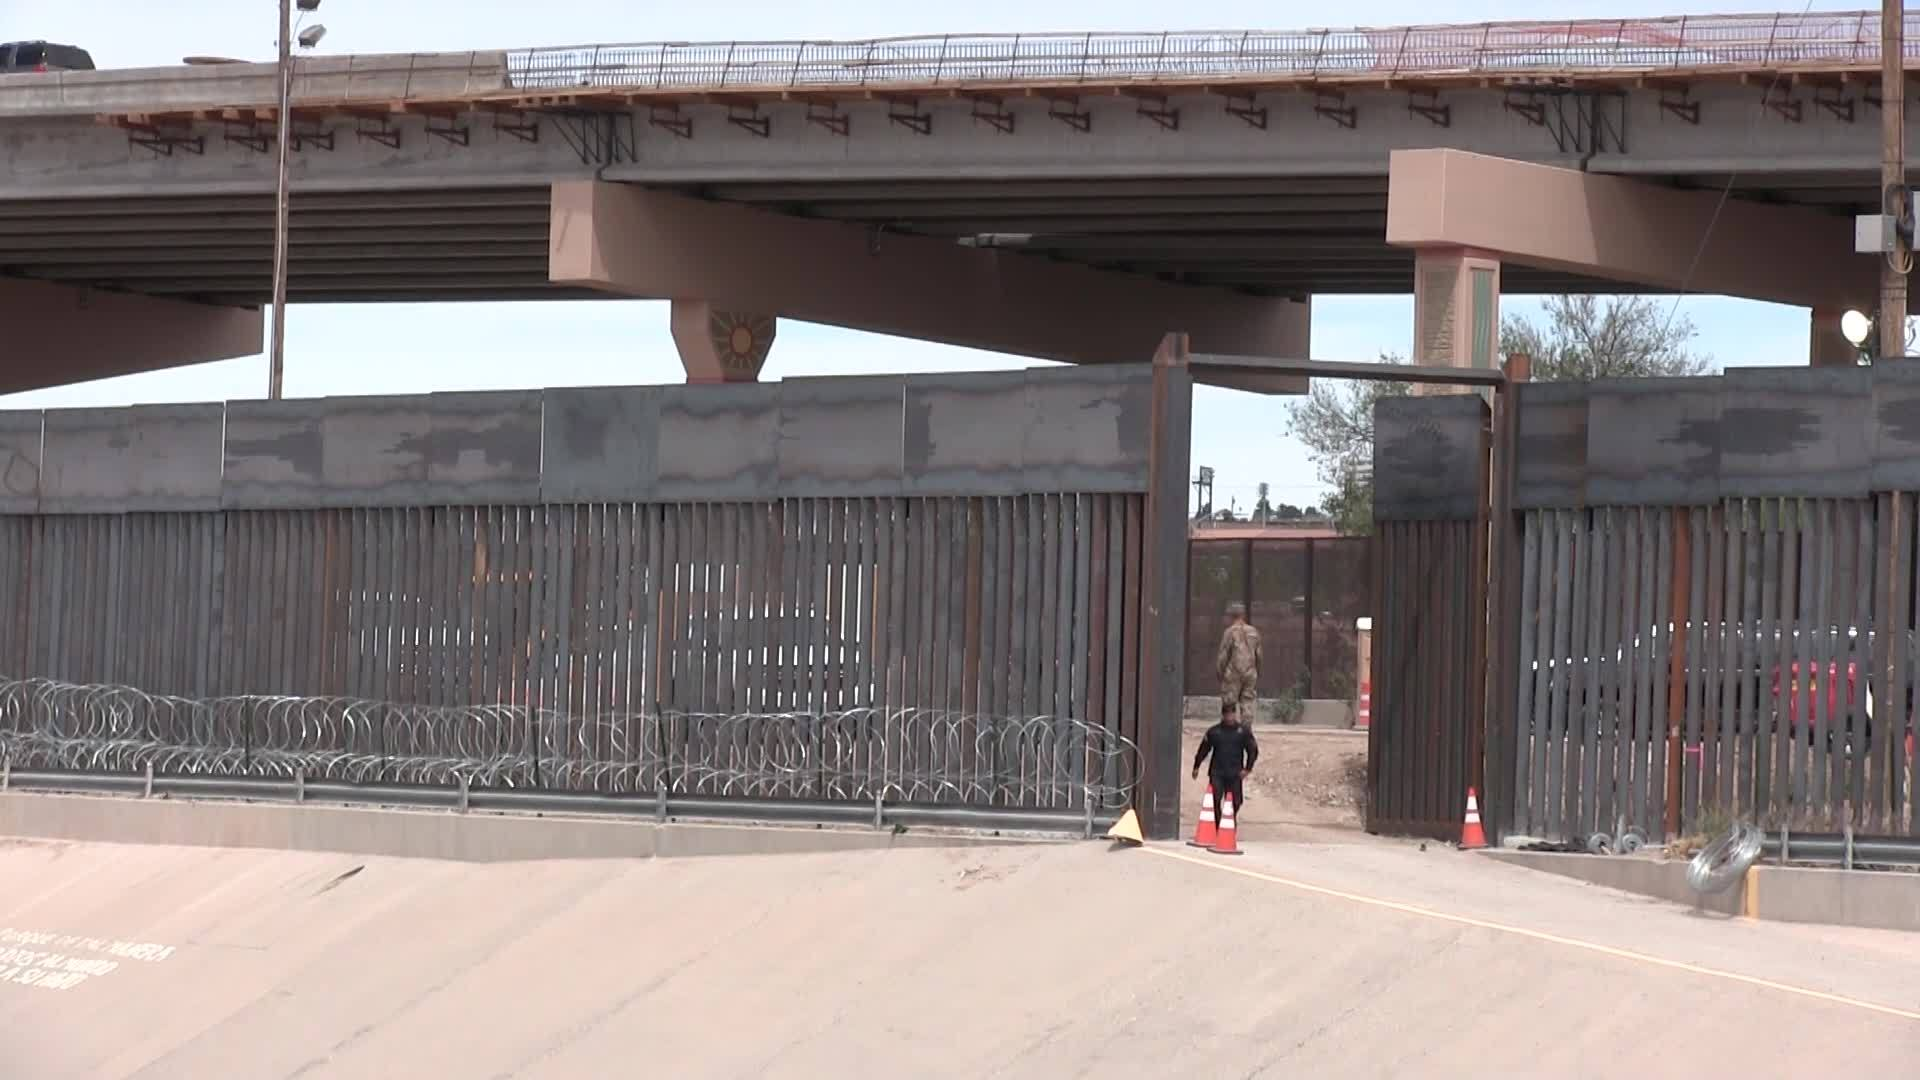 Military helps CBP with 'border hardening measures' amid migrant influx